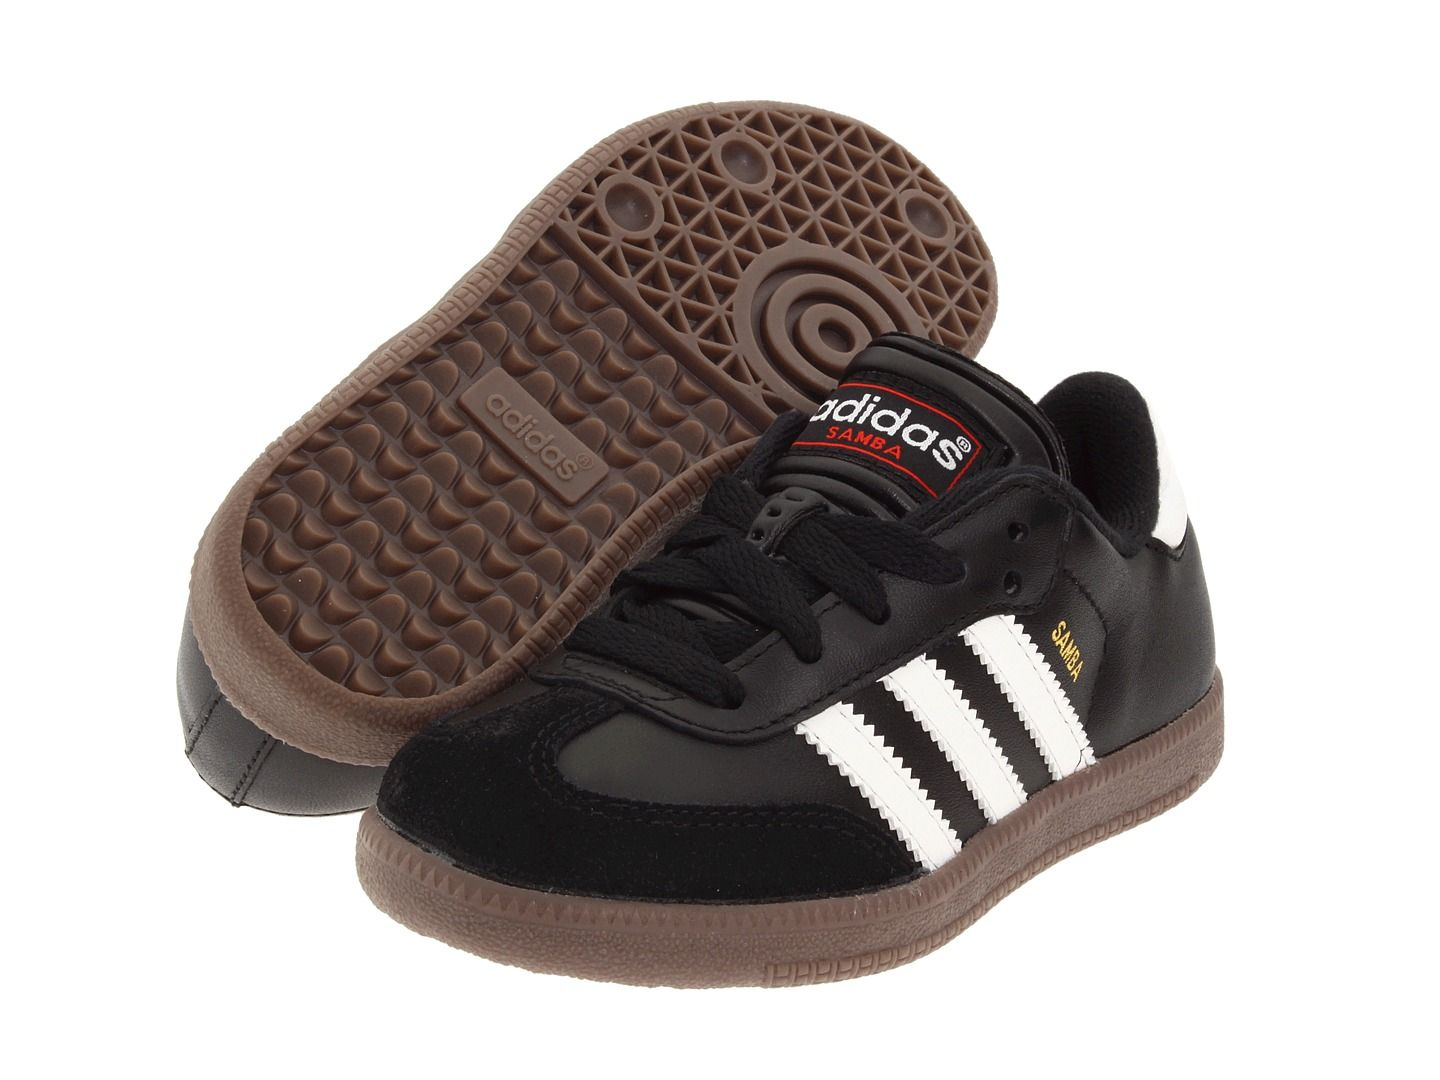 new product 2ce83 3d03c Toddler Adidas, Adidas Kids, Toddler Sneakers, Baby